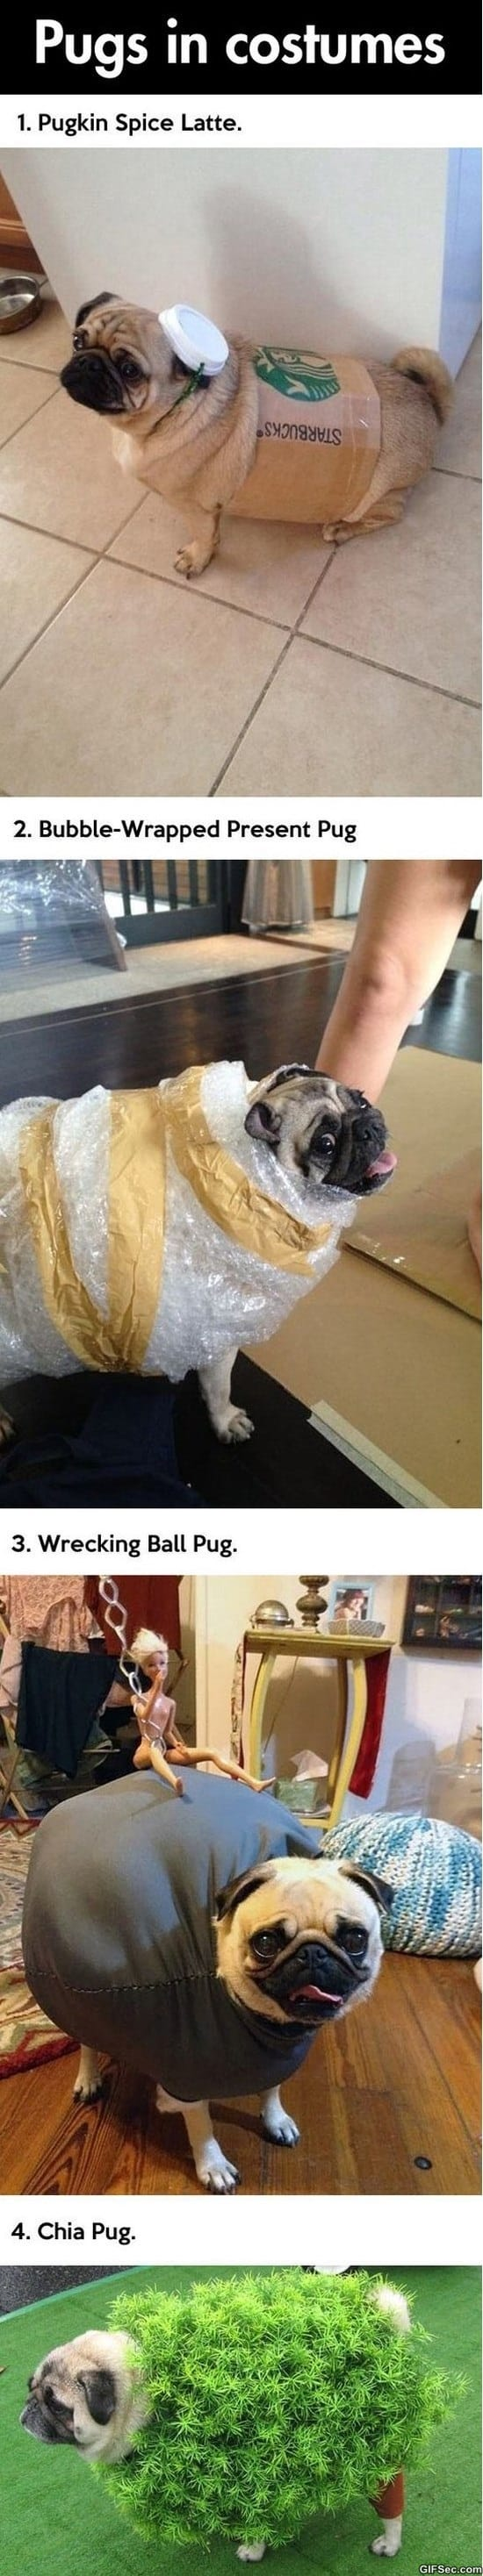 pugs-in-costumes